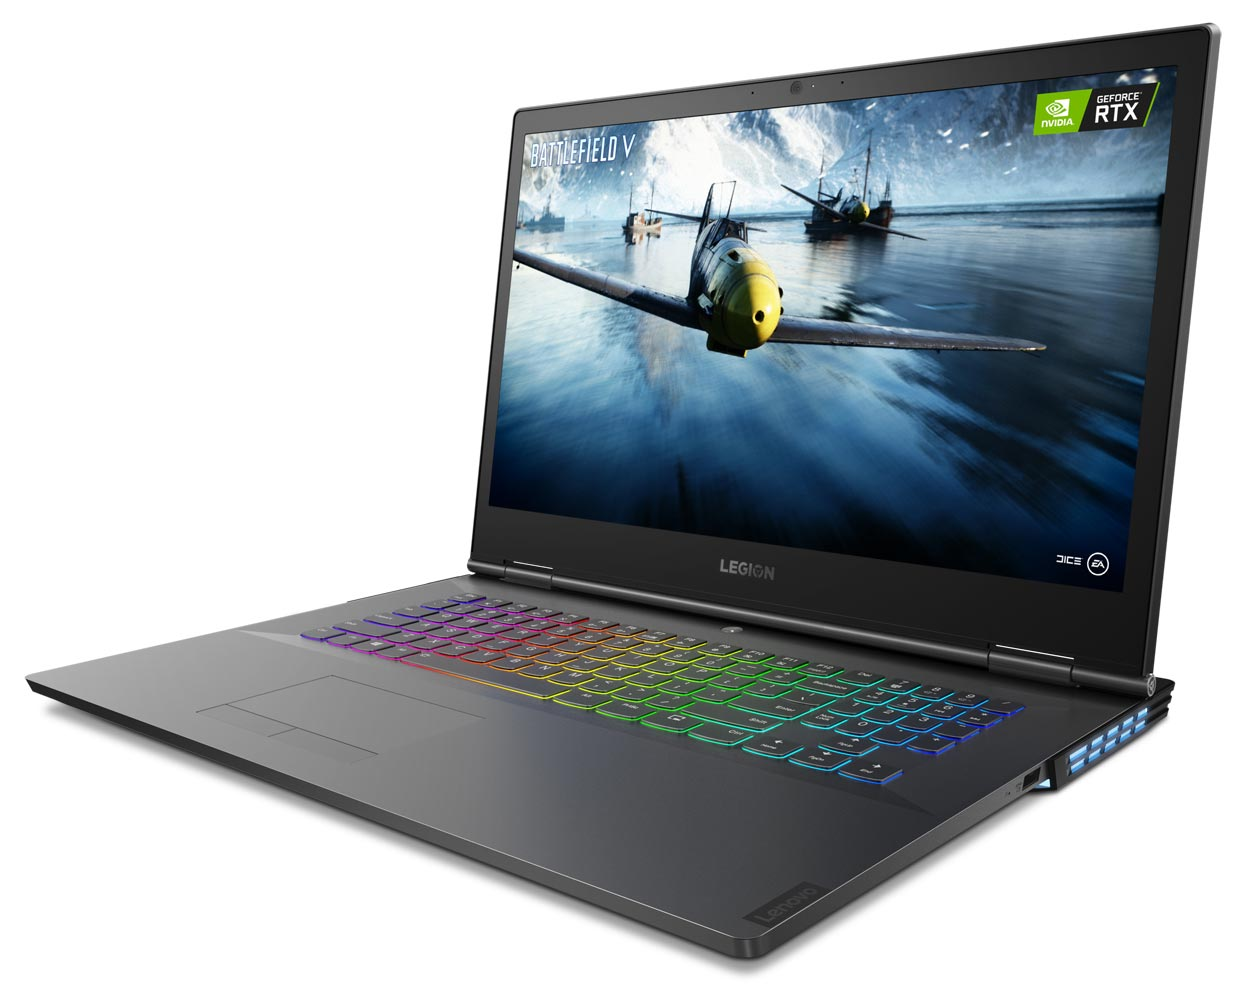 Lenovo Legion & IdeaPad gaming laptops get 9th Gen Intel